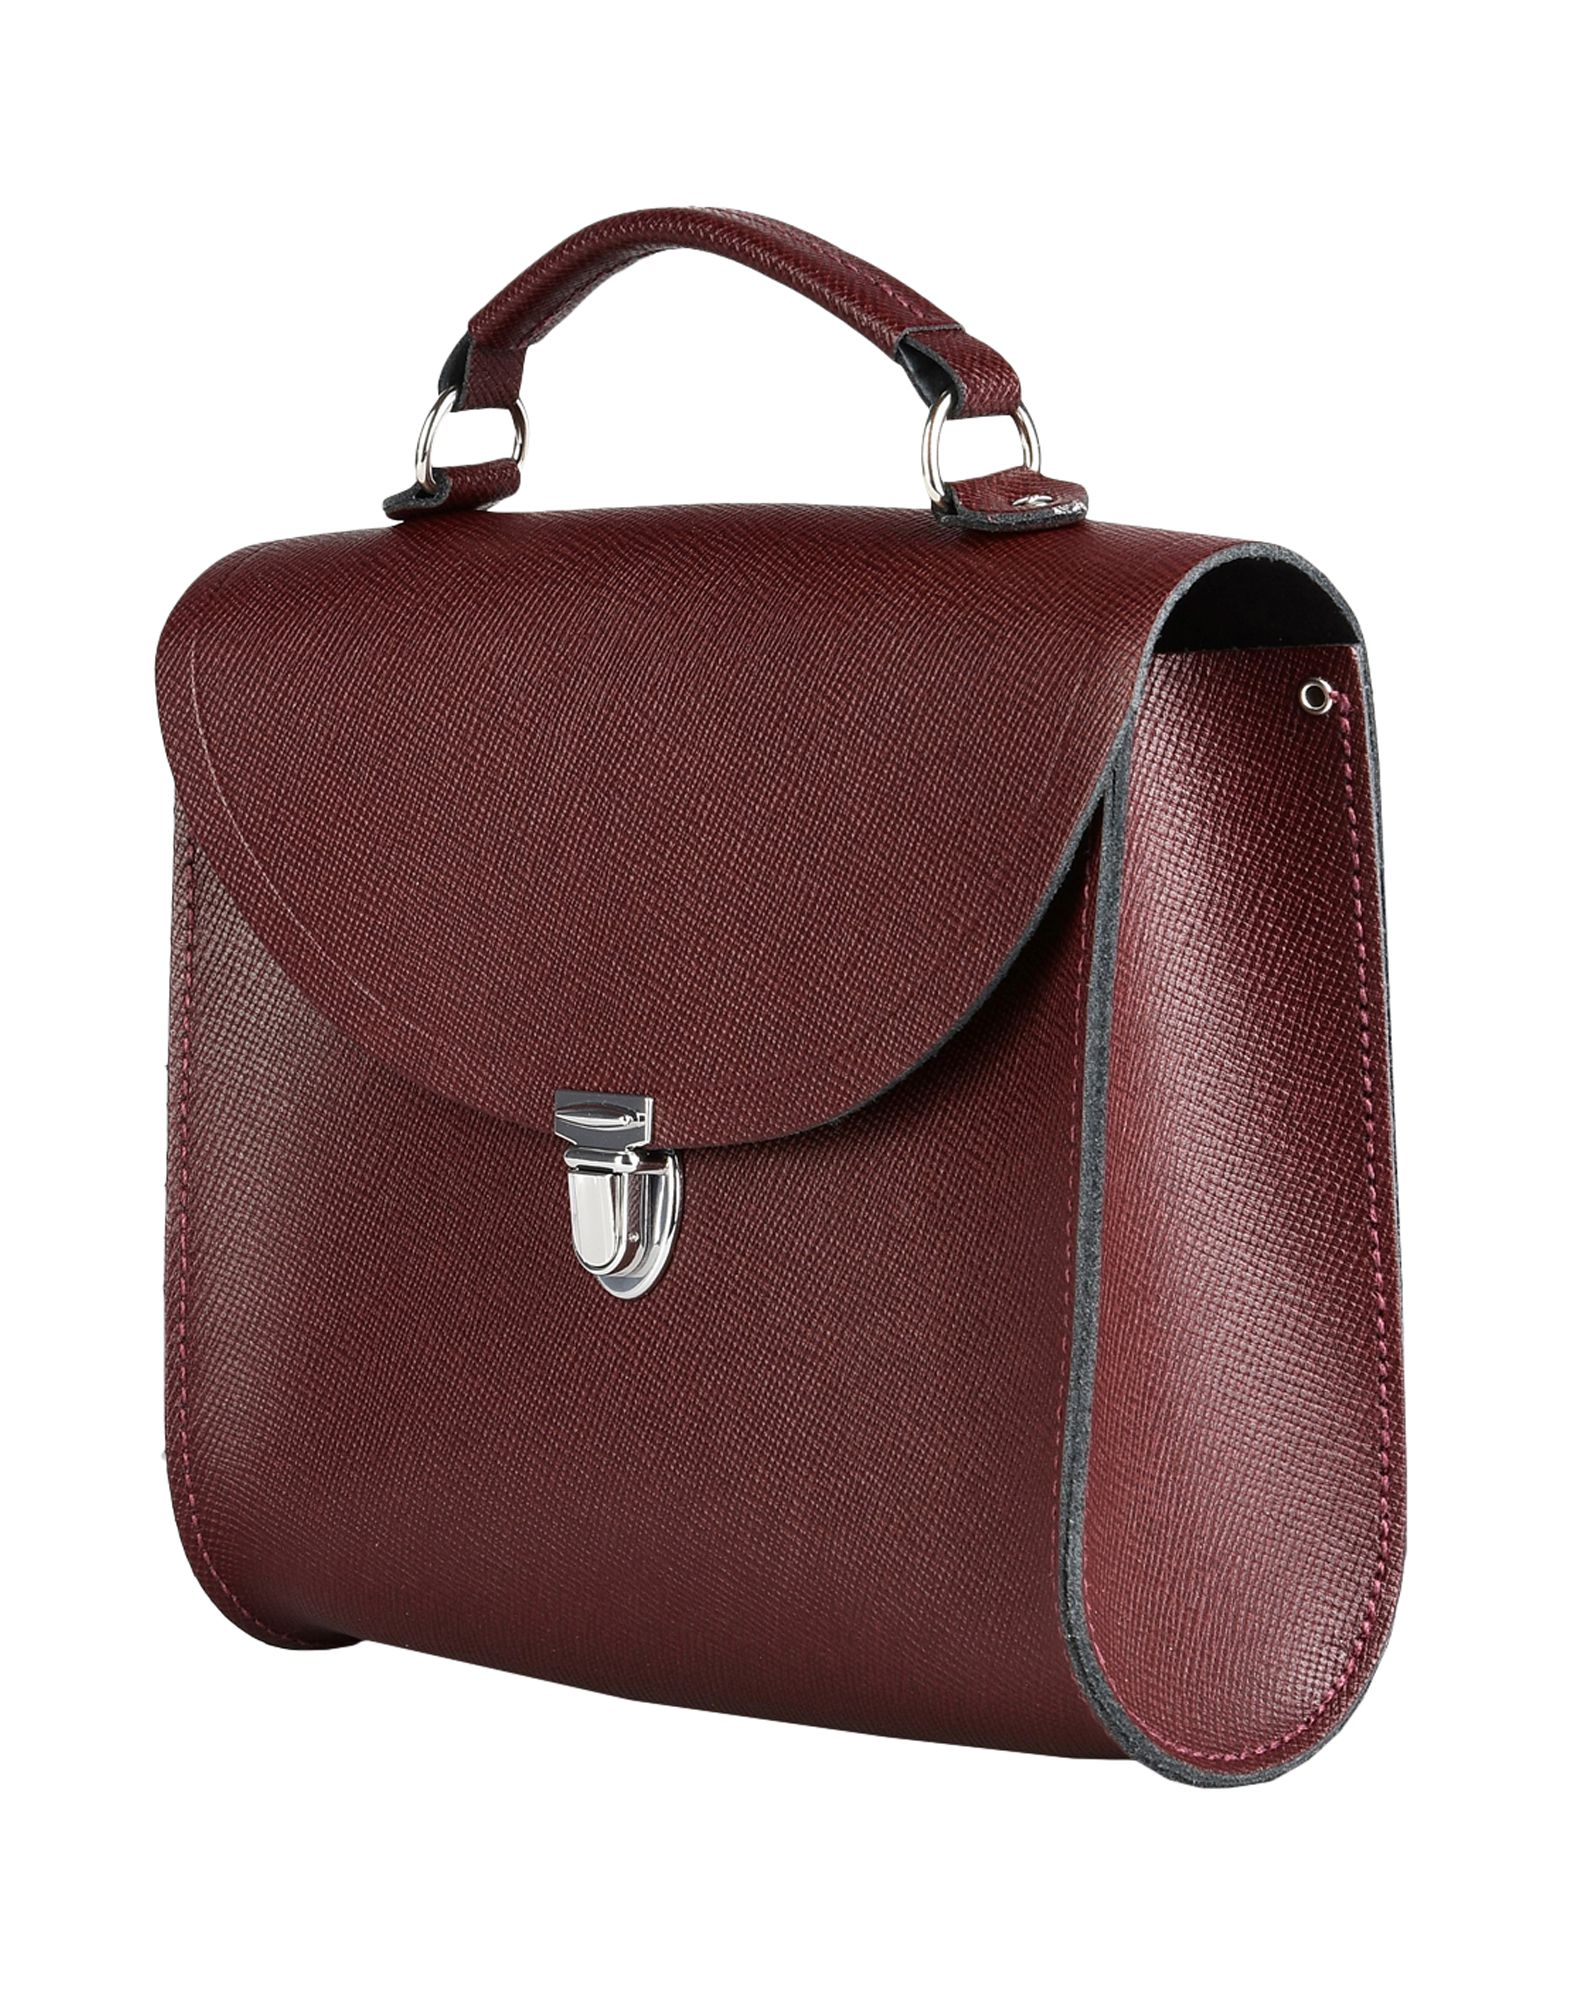 Backpacks and pouches online: school bags and leather pouches | YOOX